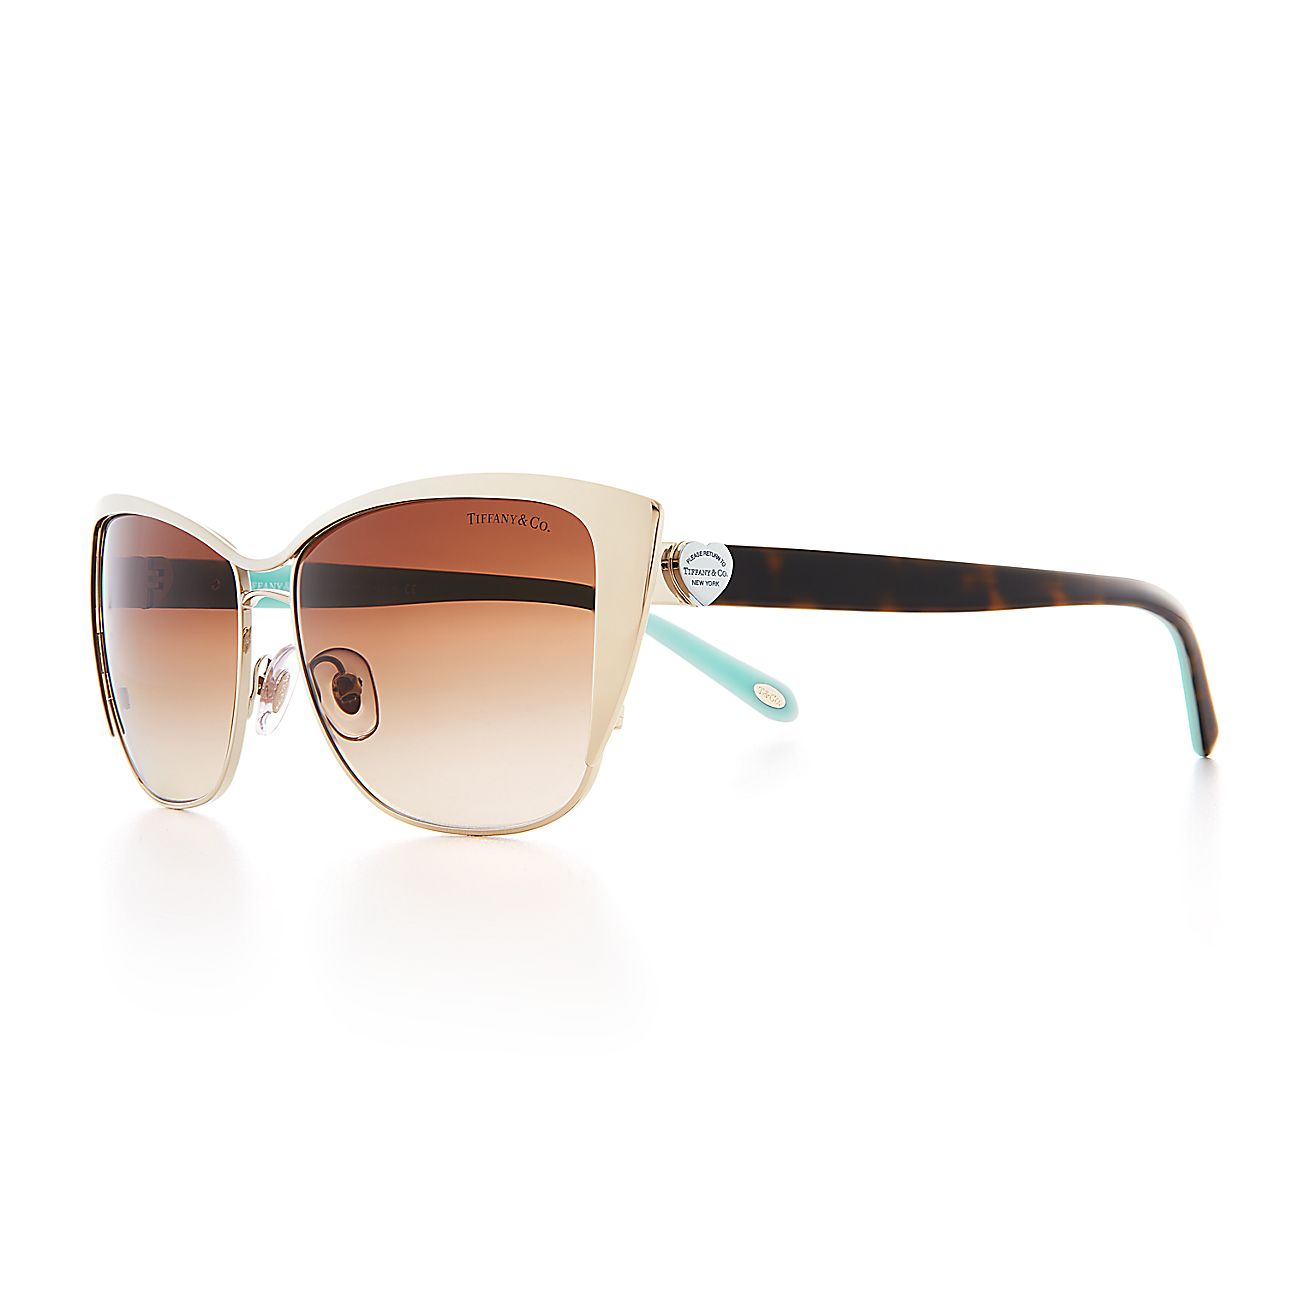 e5b2b49238a3 Return to Tiffany® cat eye sunglasses in pale gold-colored metal and  acetate.